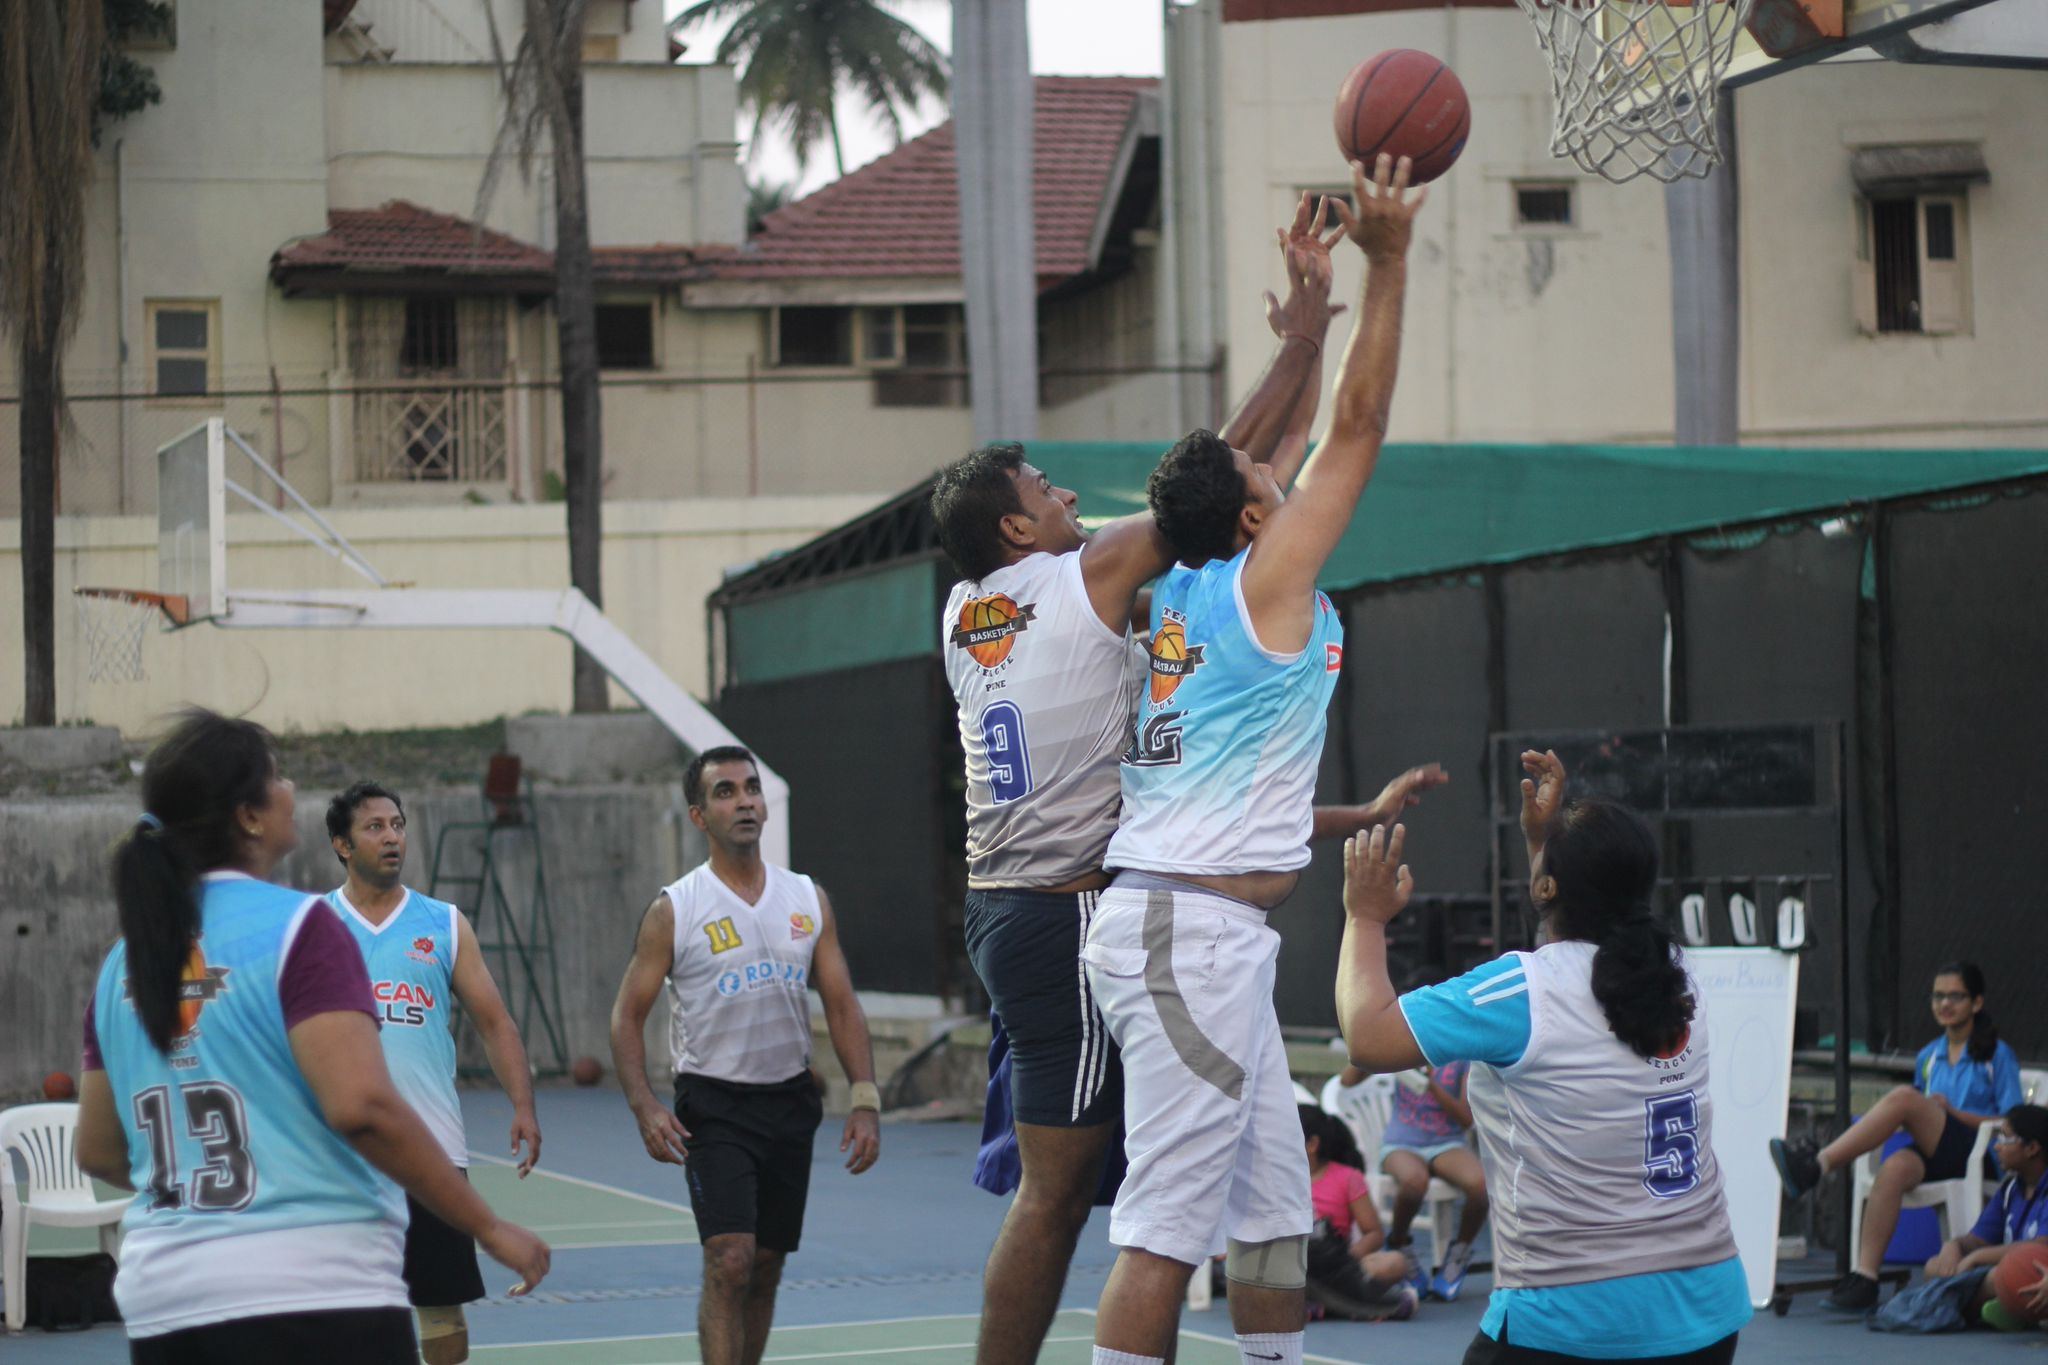 Masters Basketball League 2015 action